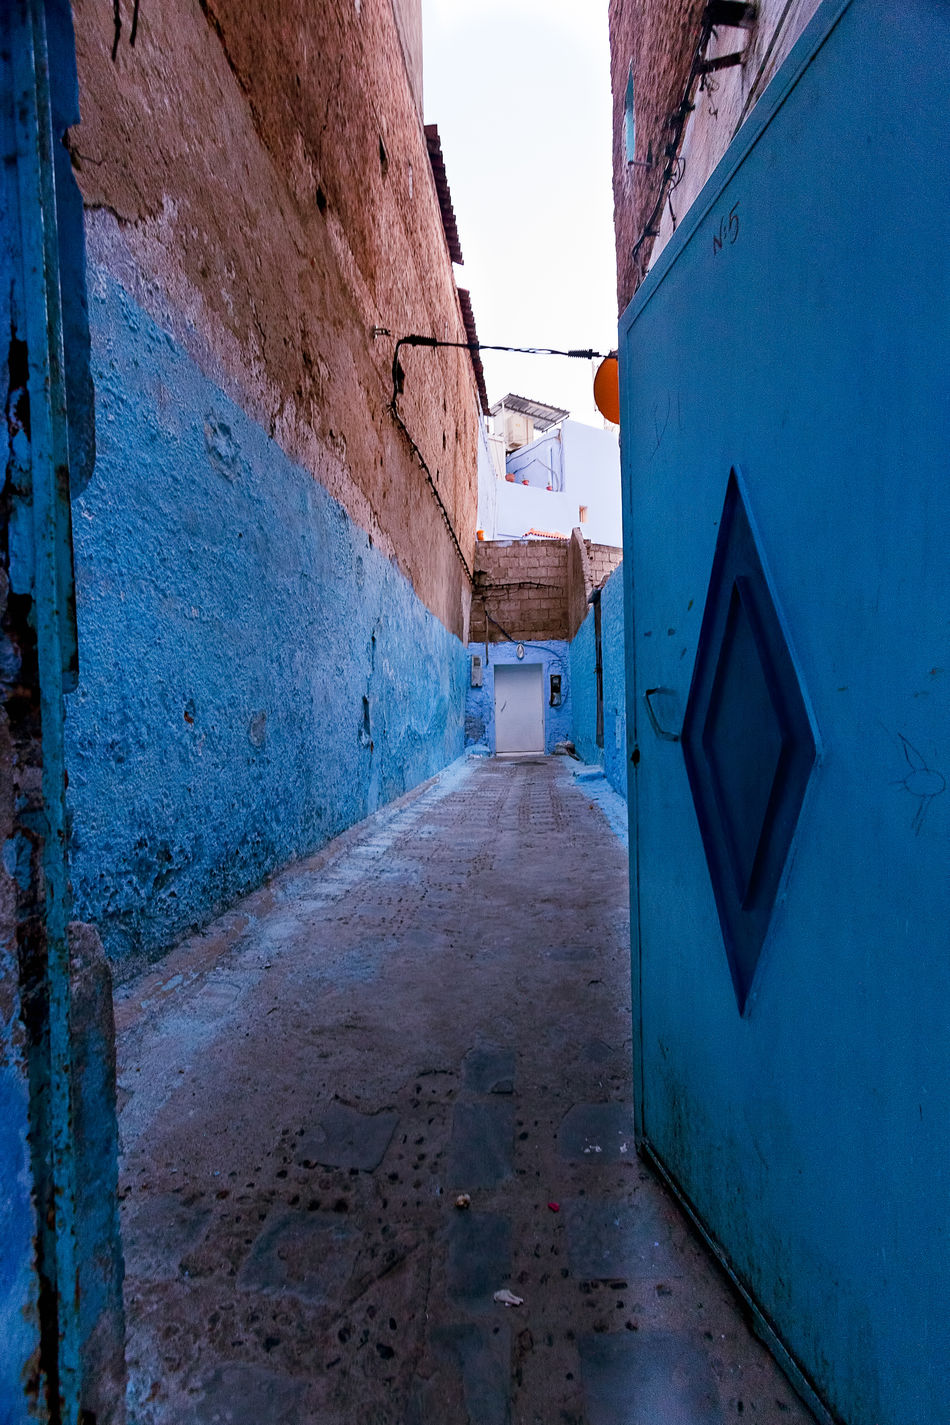 A Frame Within A Frame Blue Blue City Blue Wall Blue Walls Chefchaouen Culdesac Door Doorporn Doorway Frame Frame It! Gateway Invite Morocco Open Door Street Photography Streetphotography Travel Travelgram Travelphotography Welcome Showcase: December